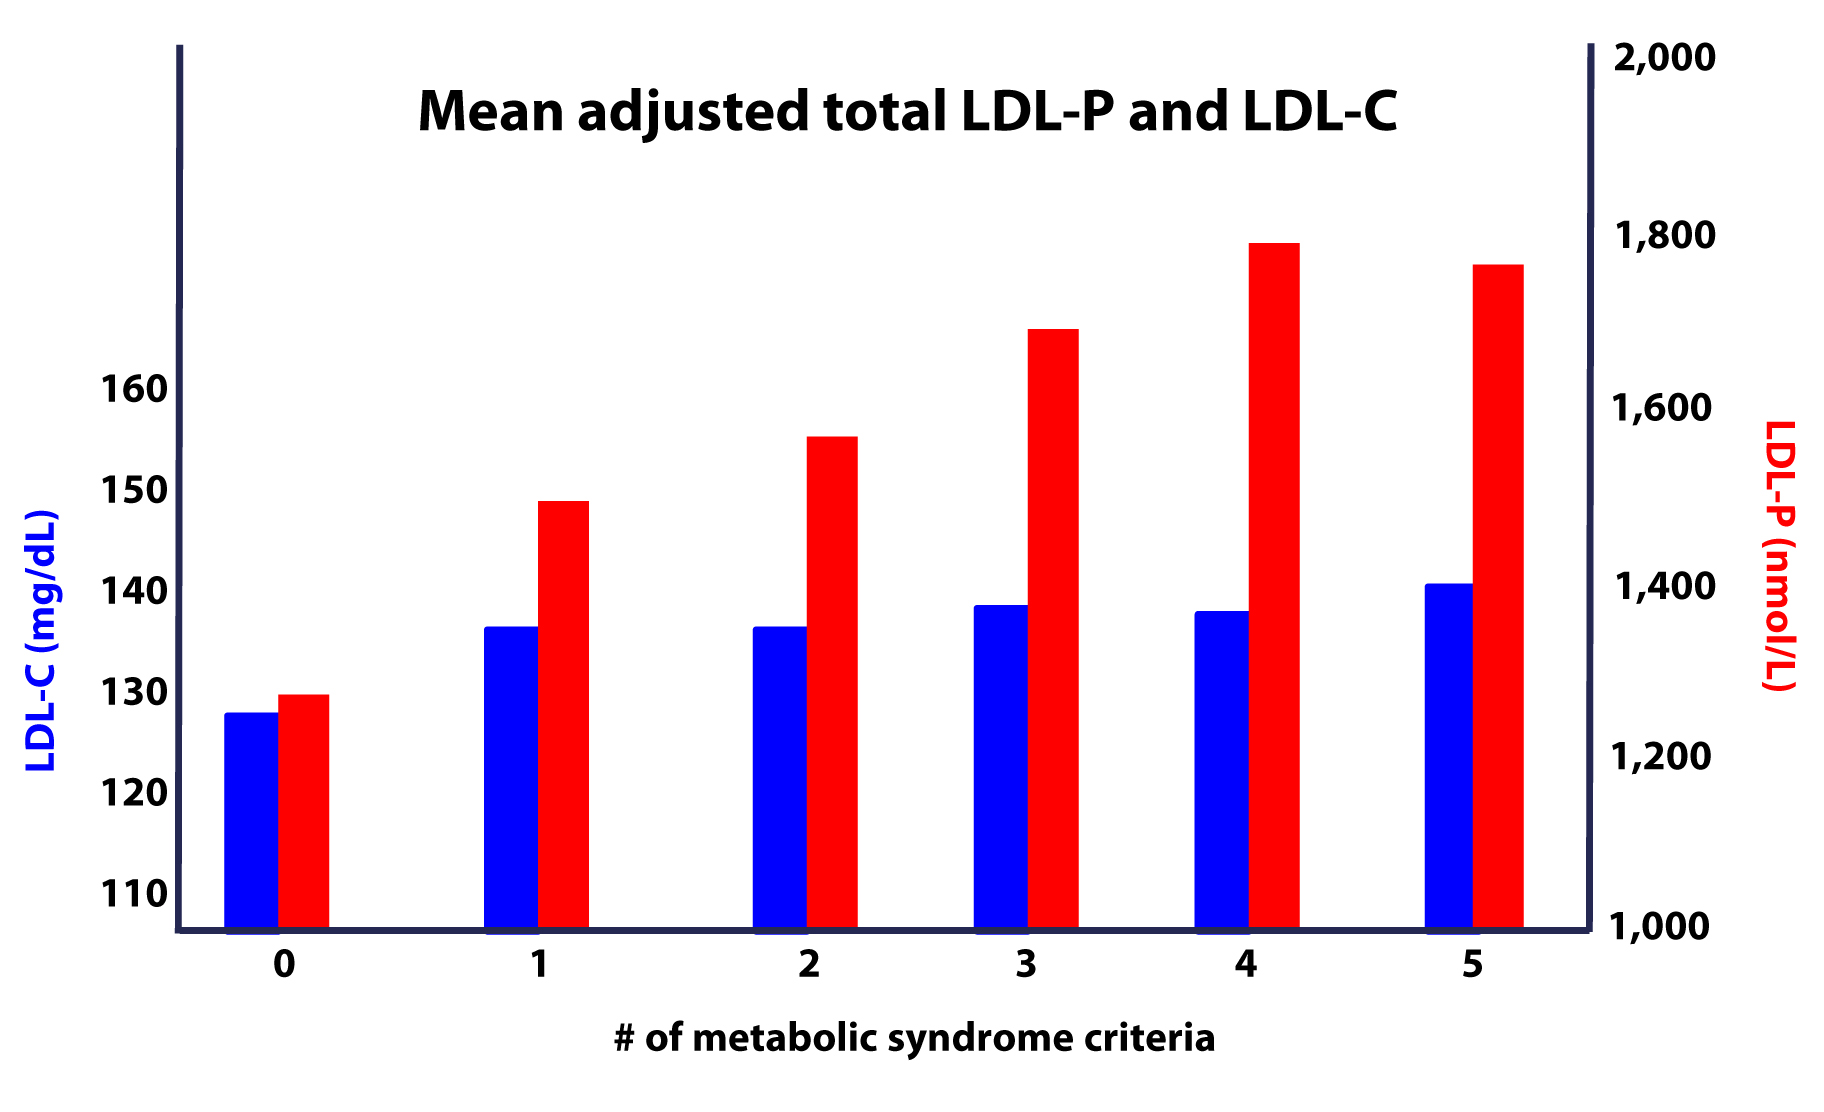 Diet and HDL; the effect of myristic acid vs carbohydrate.